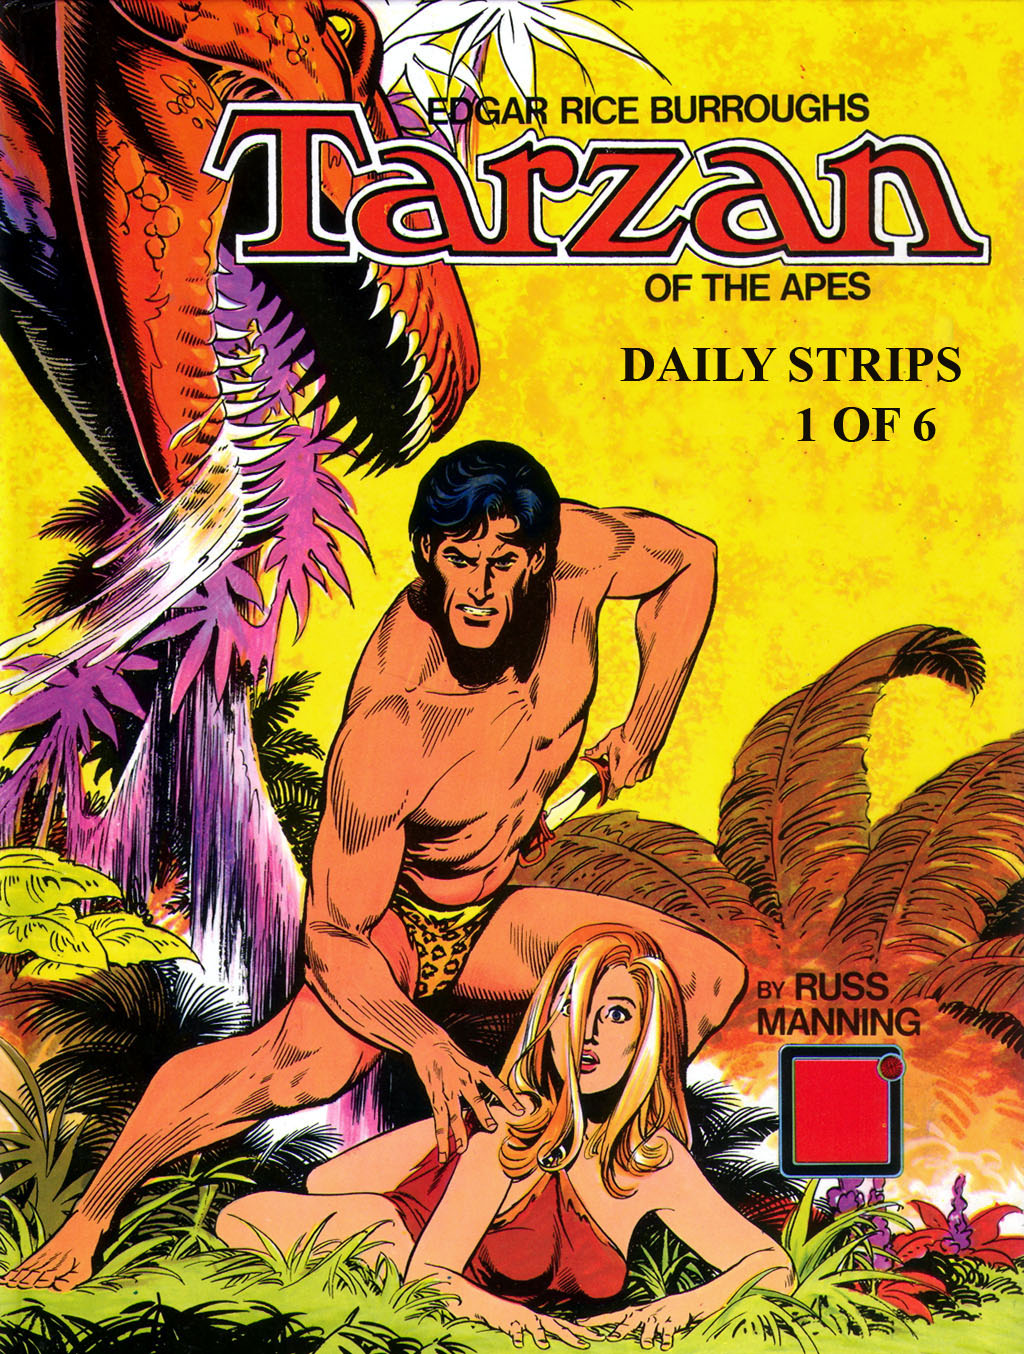 COMING SOON  Tarzan-Russ Manning Complete Dailies